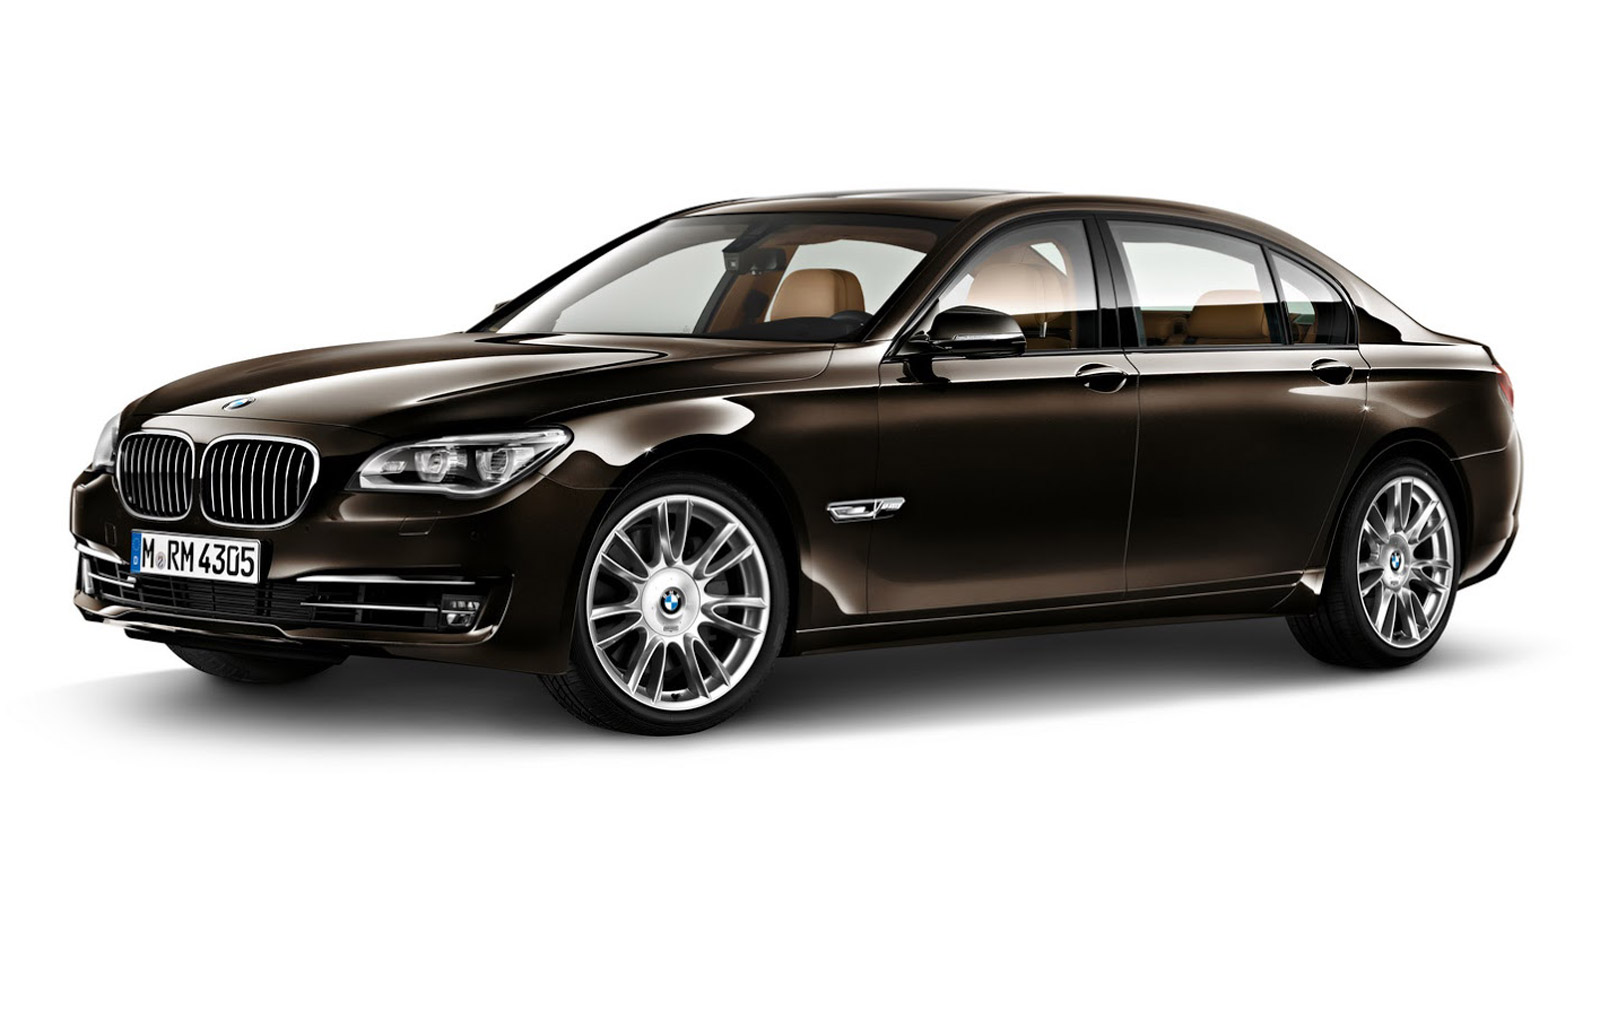 2015 Bmw 7 Series Individual Final Edition To Debut At 2014 Paris